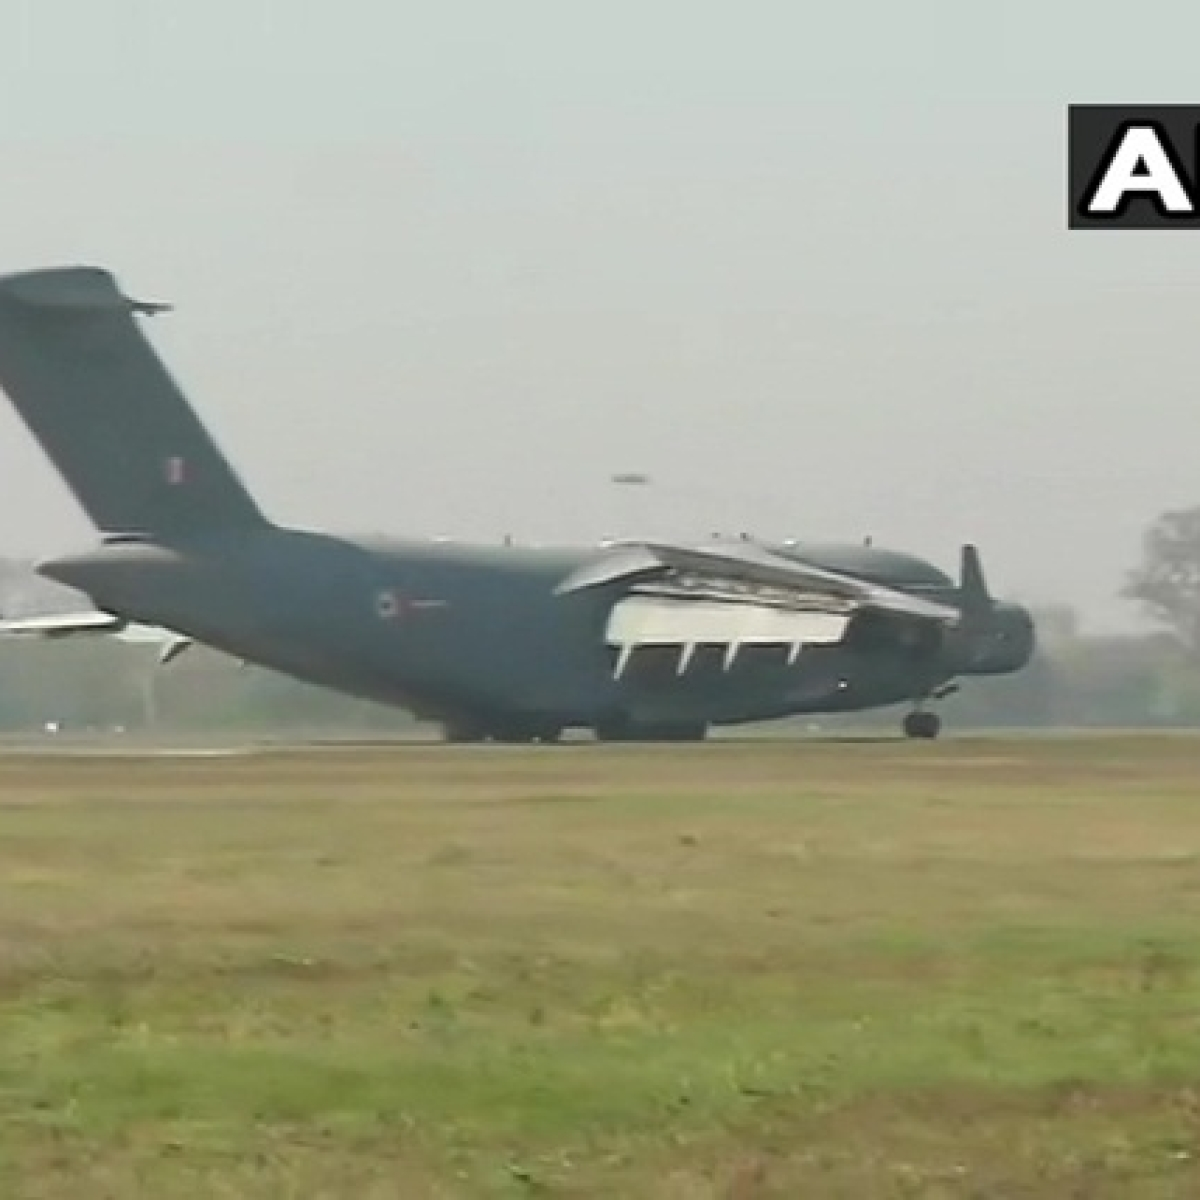 Latest Coronavirus update in India: IAF plane with 58 Indian pilgrims from Iran lands at Hindon airbase